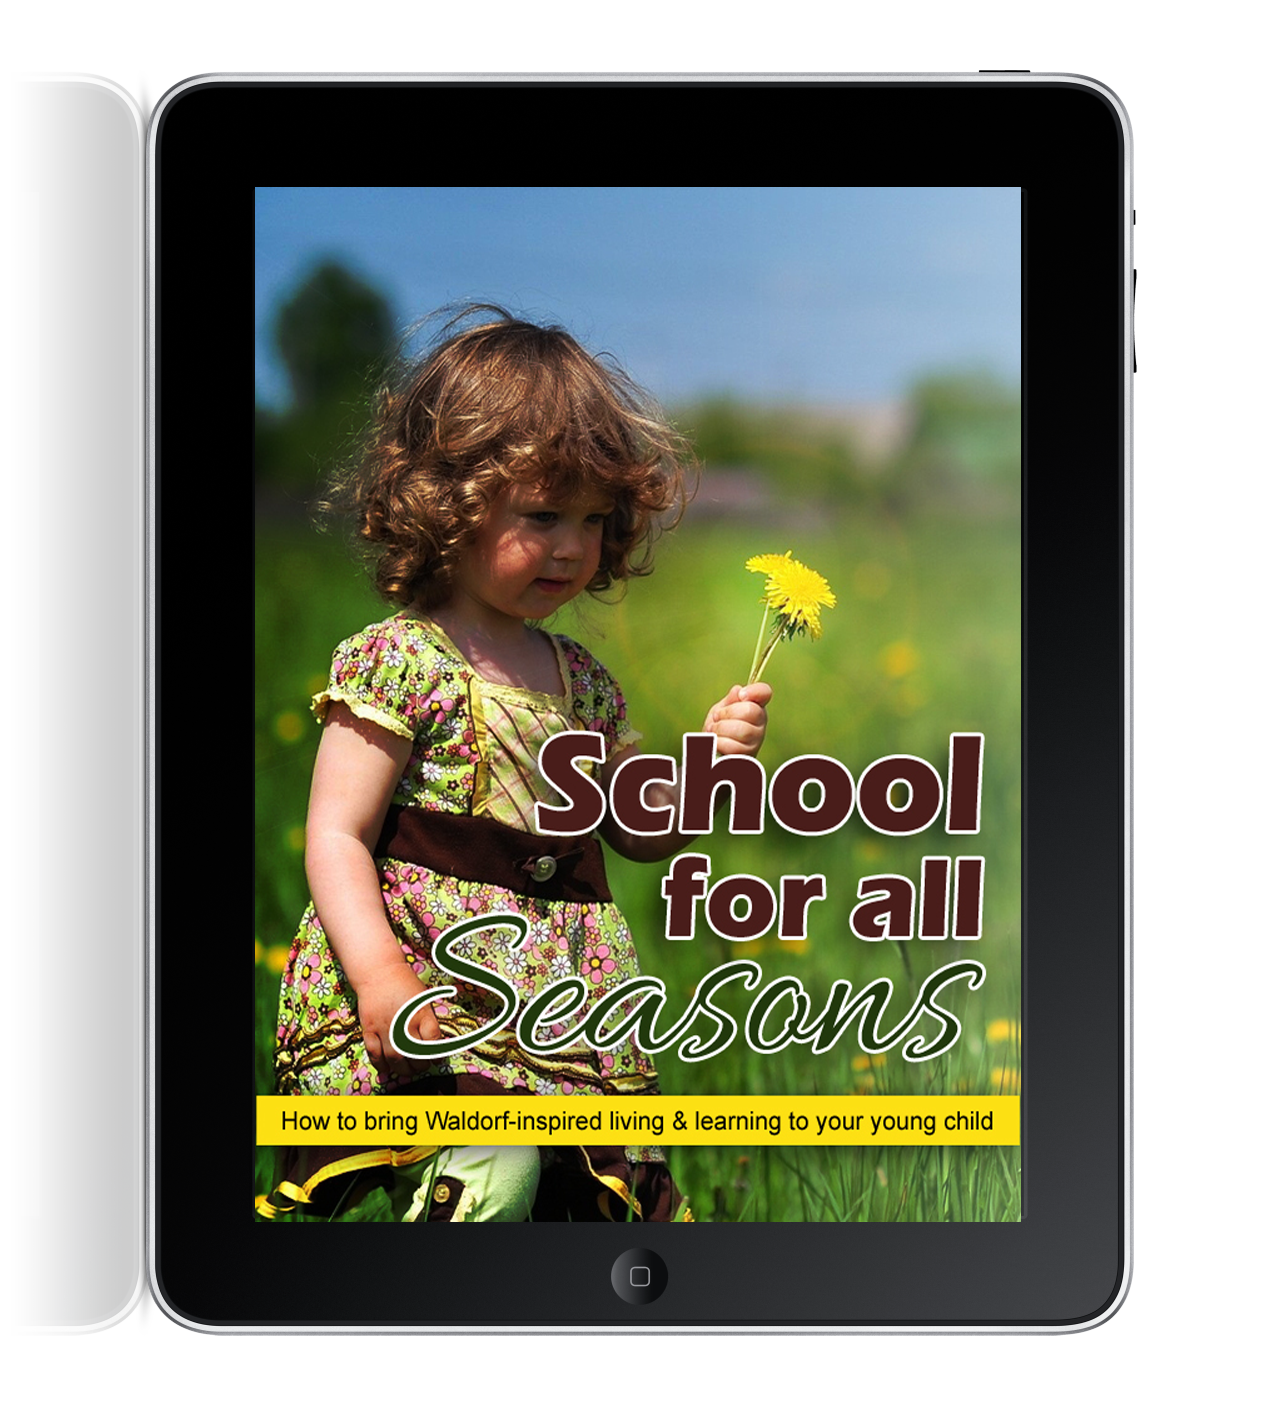 School for all Seasons